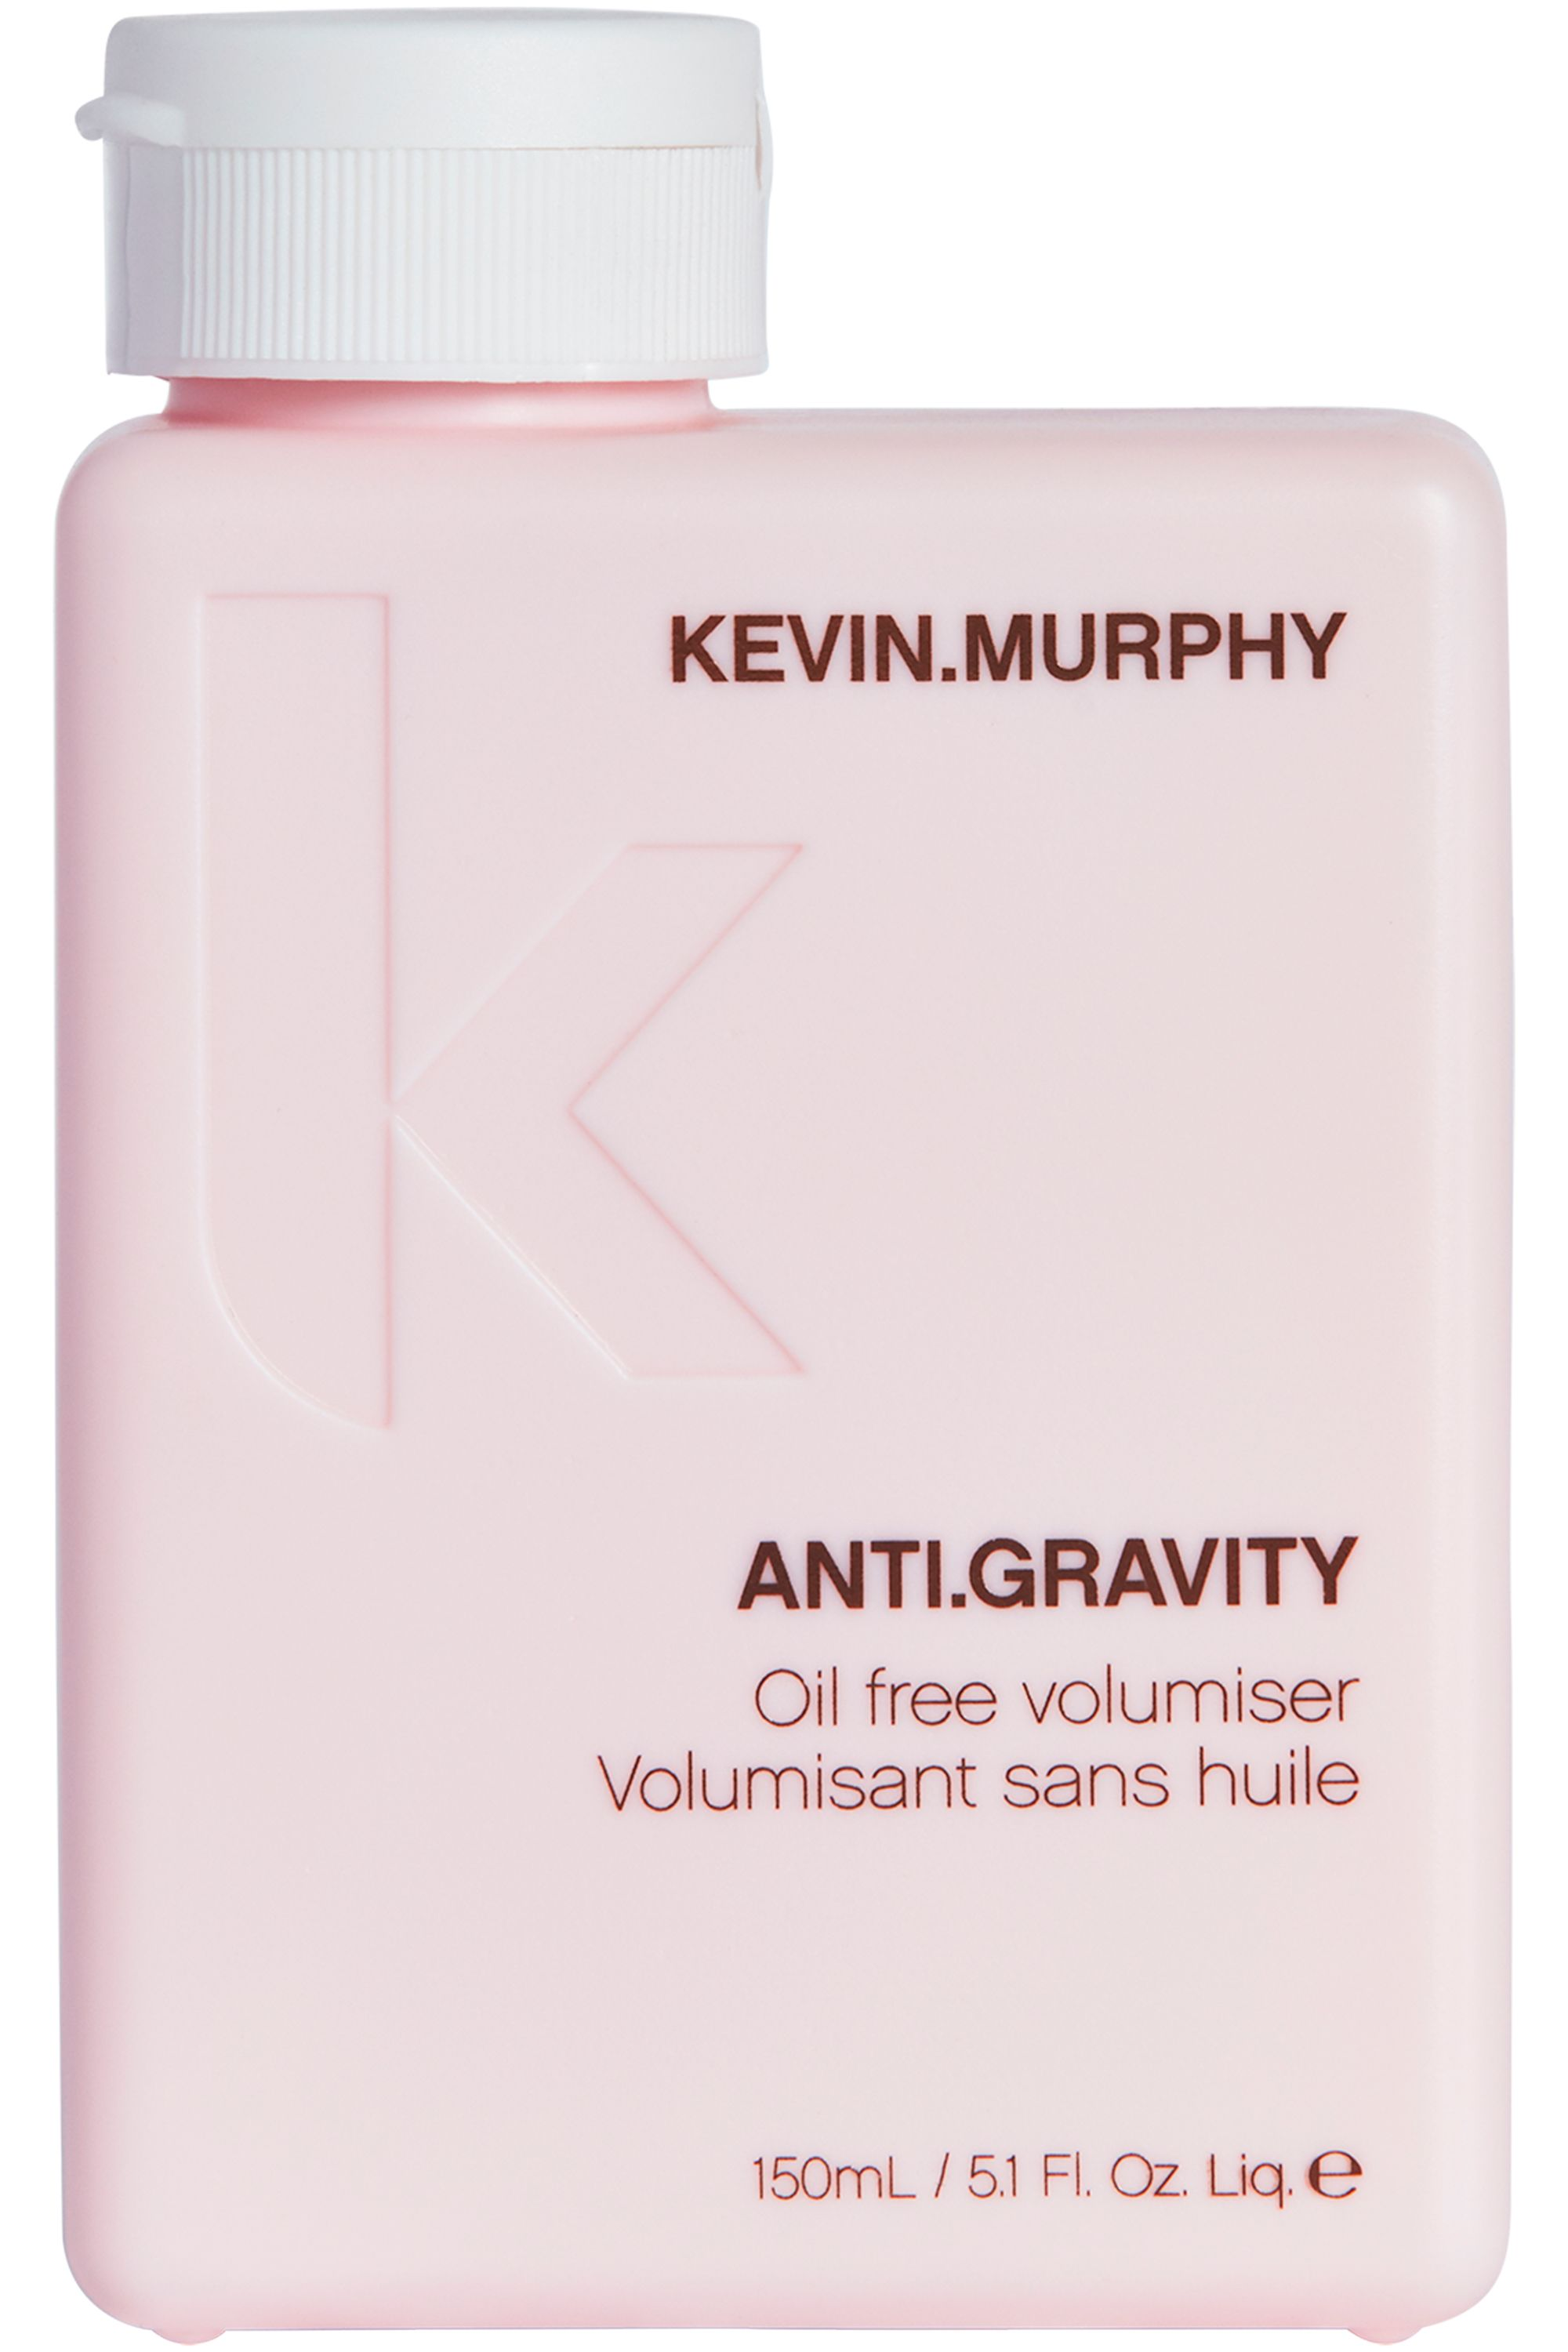 Blissim : KEVIN.MURPHY - Lotion volumisante ANTI.GRAVITY.LOTION - Lotion